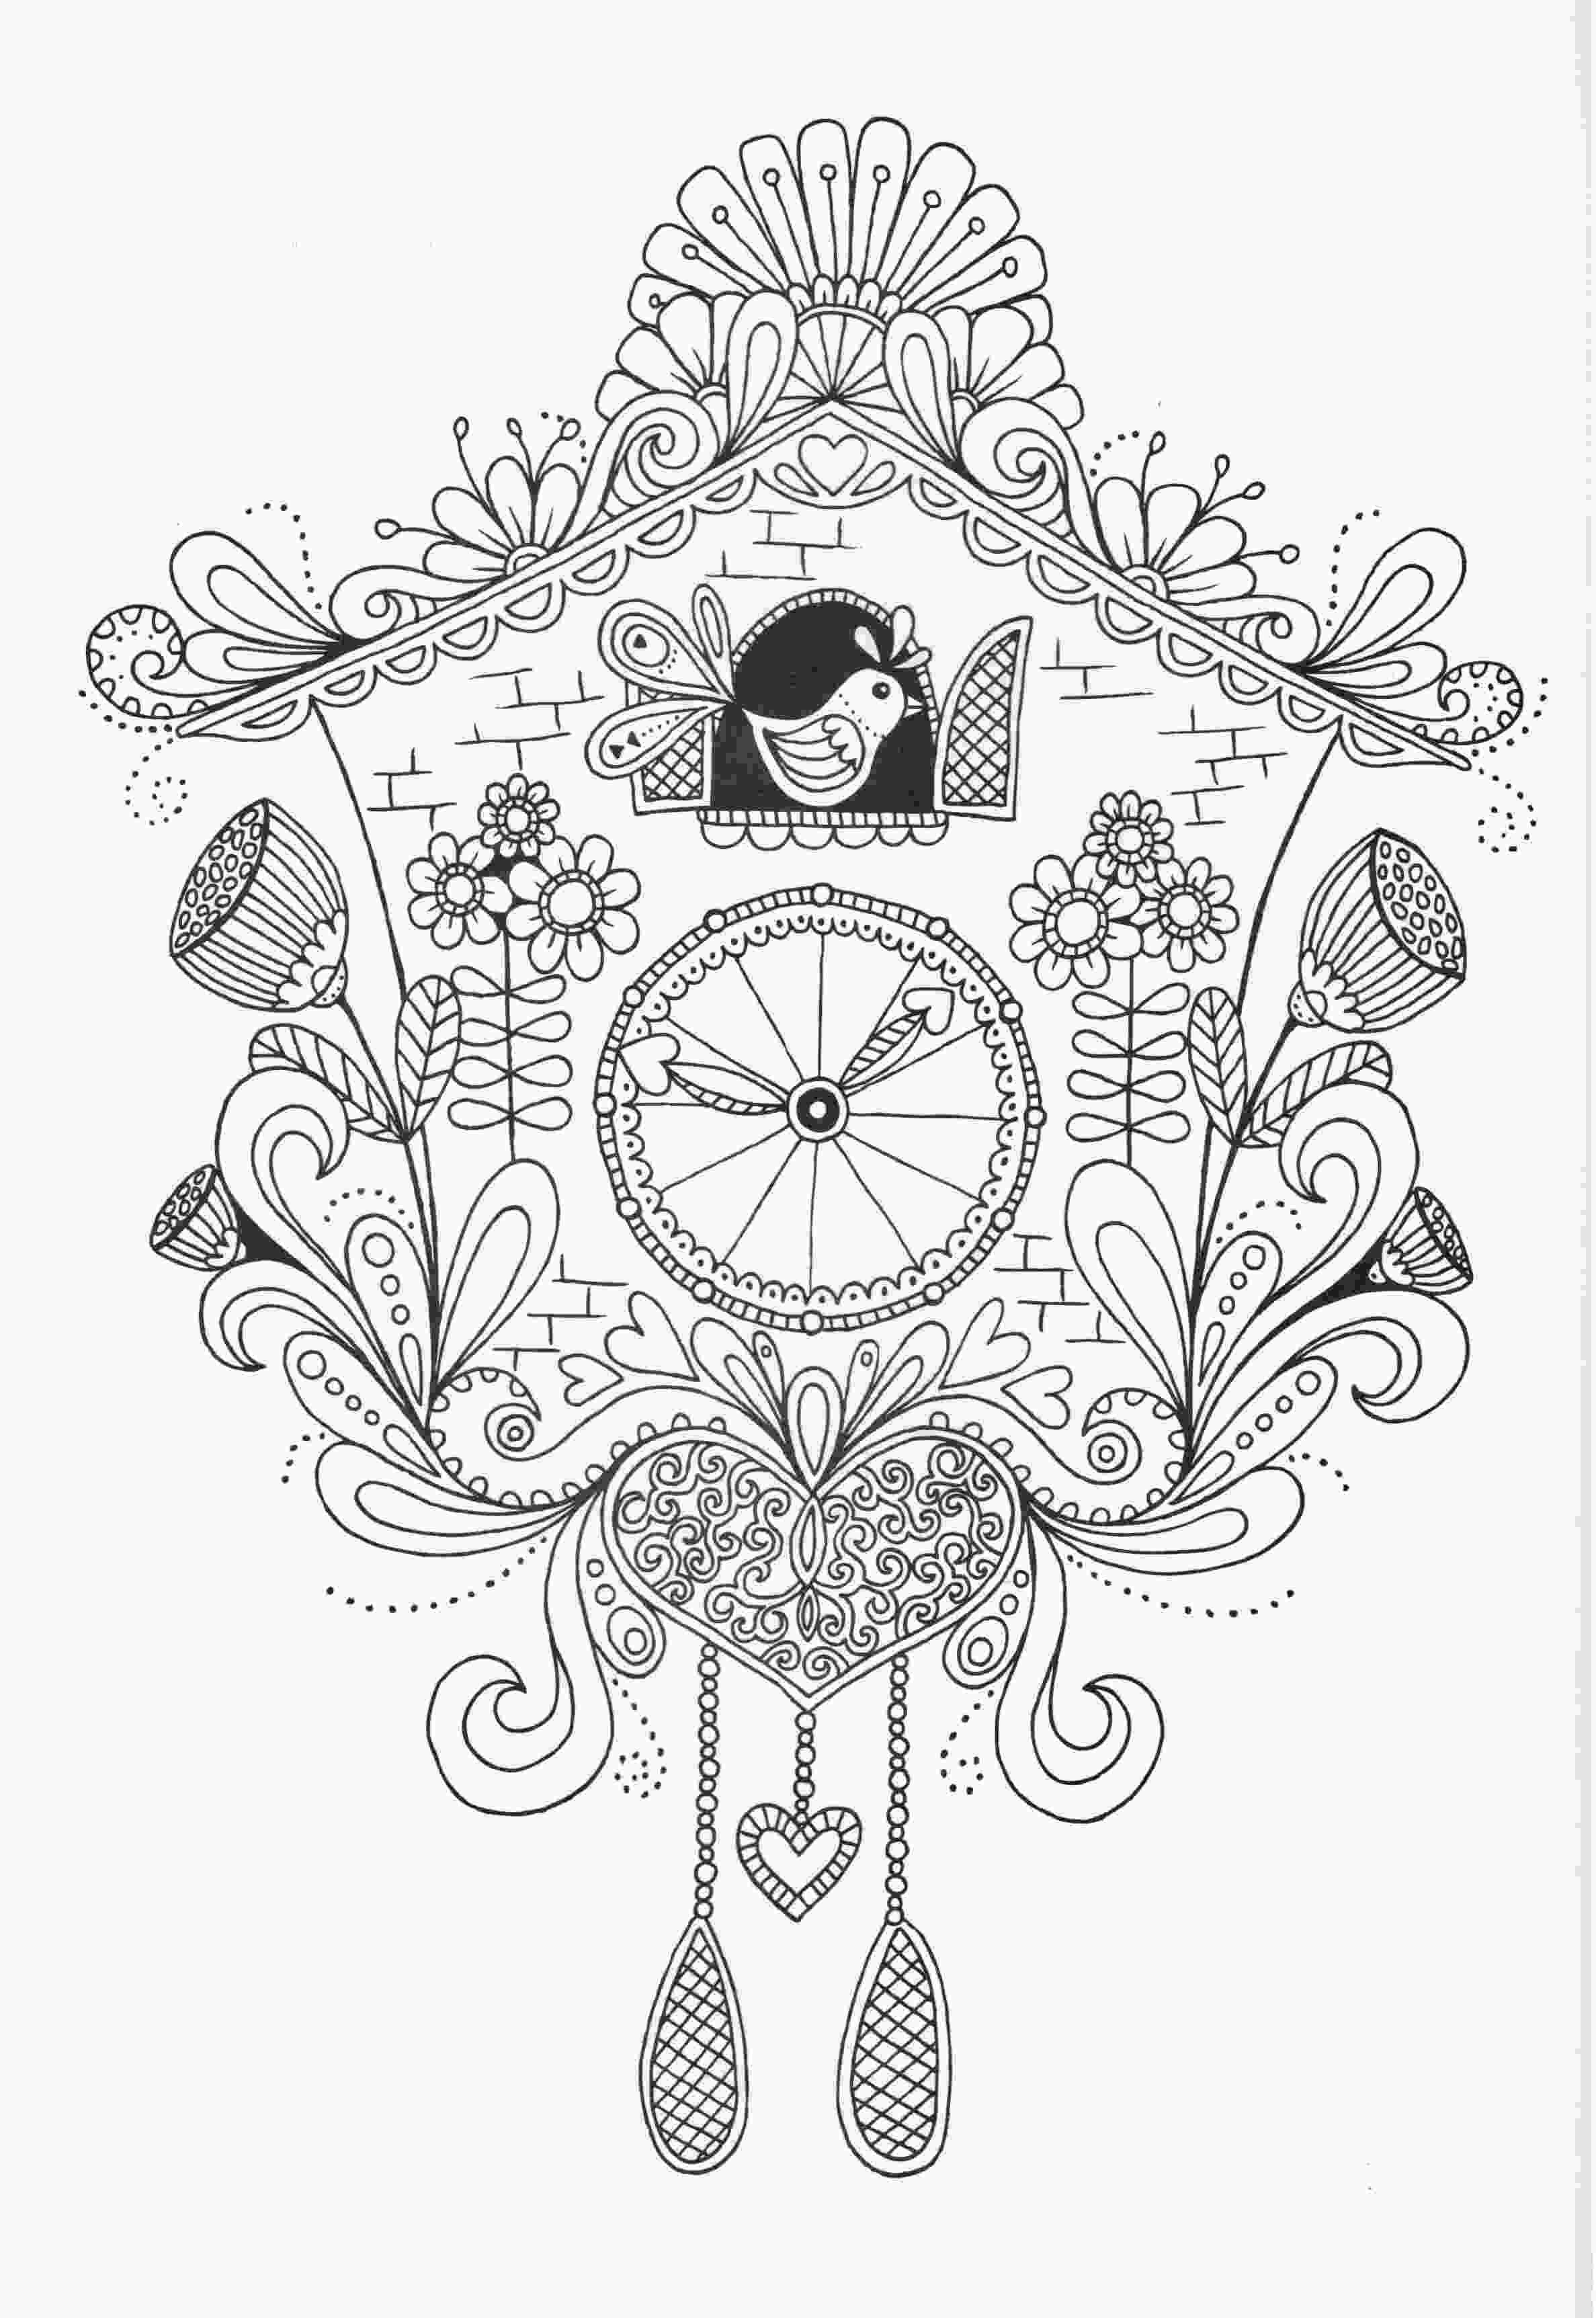 coloring sheet adults pin by deanna lea on ravens grownup coloring coloring